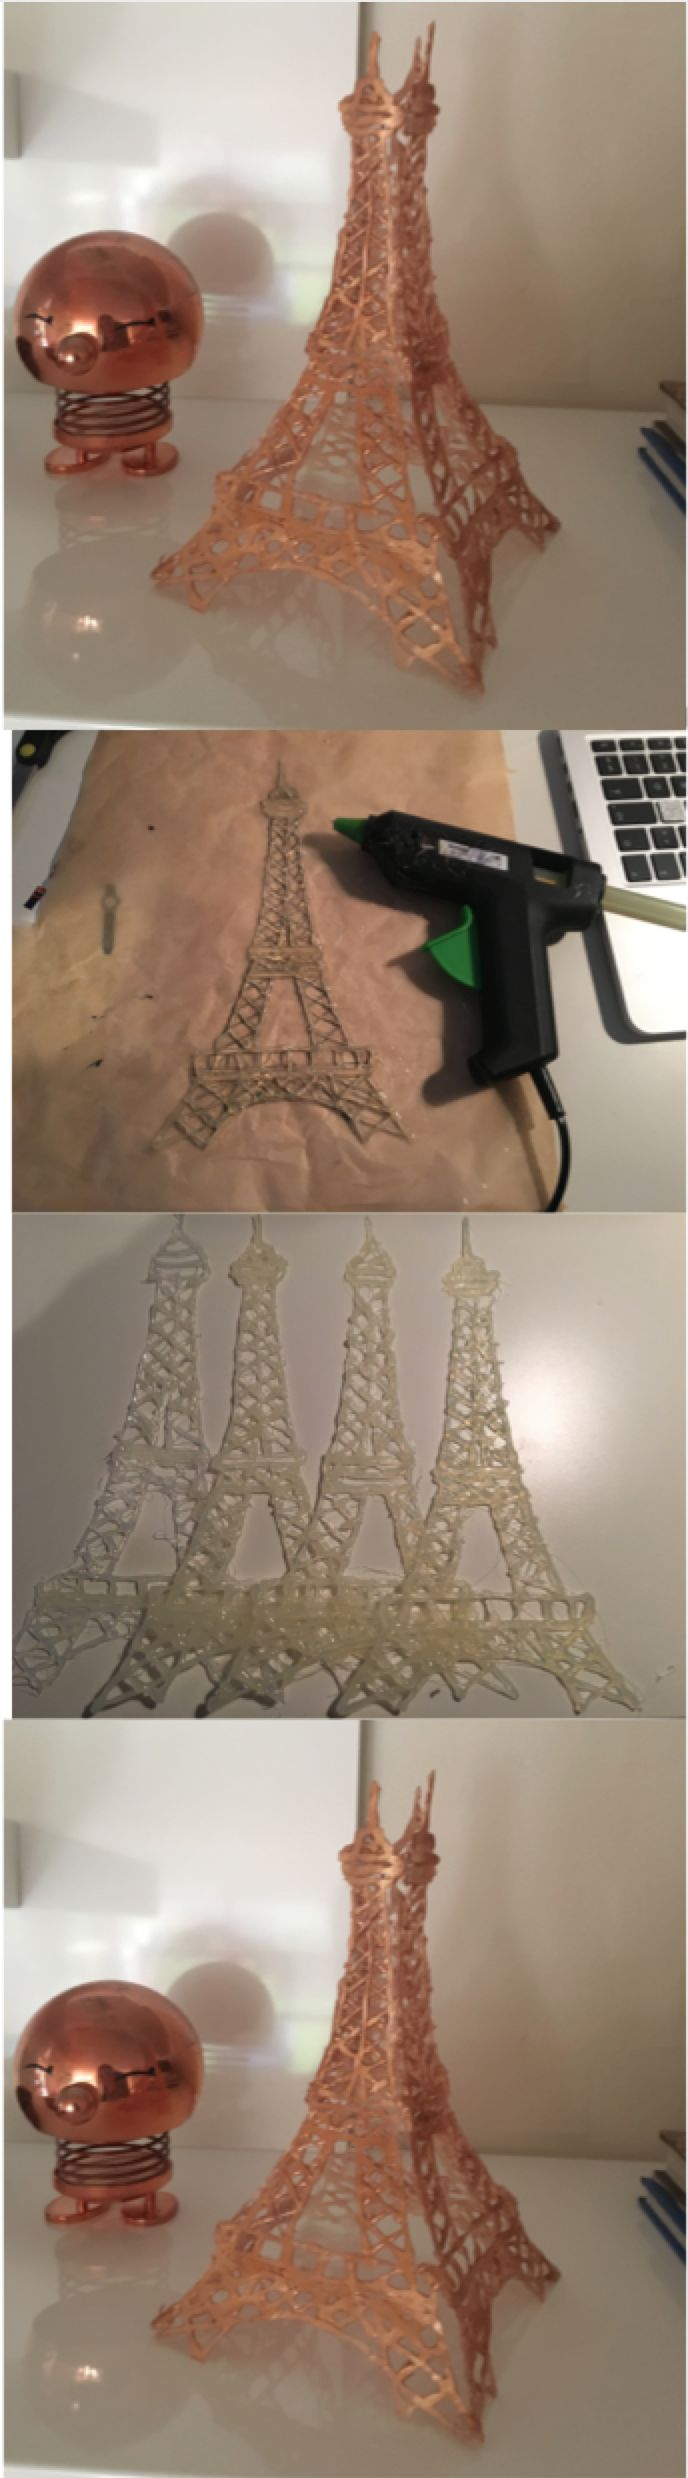 hot glue gun projects Diy this hot glue canvas art - a simple craft project to make custom wall decor blog  click the image below for even more hot glue gun crafts and diy inspiration.